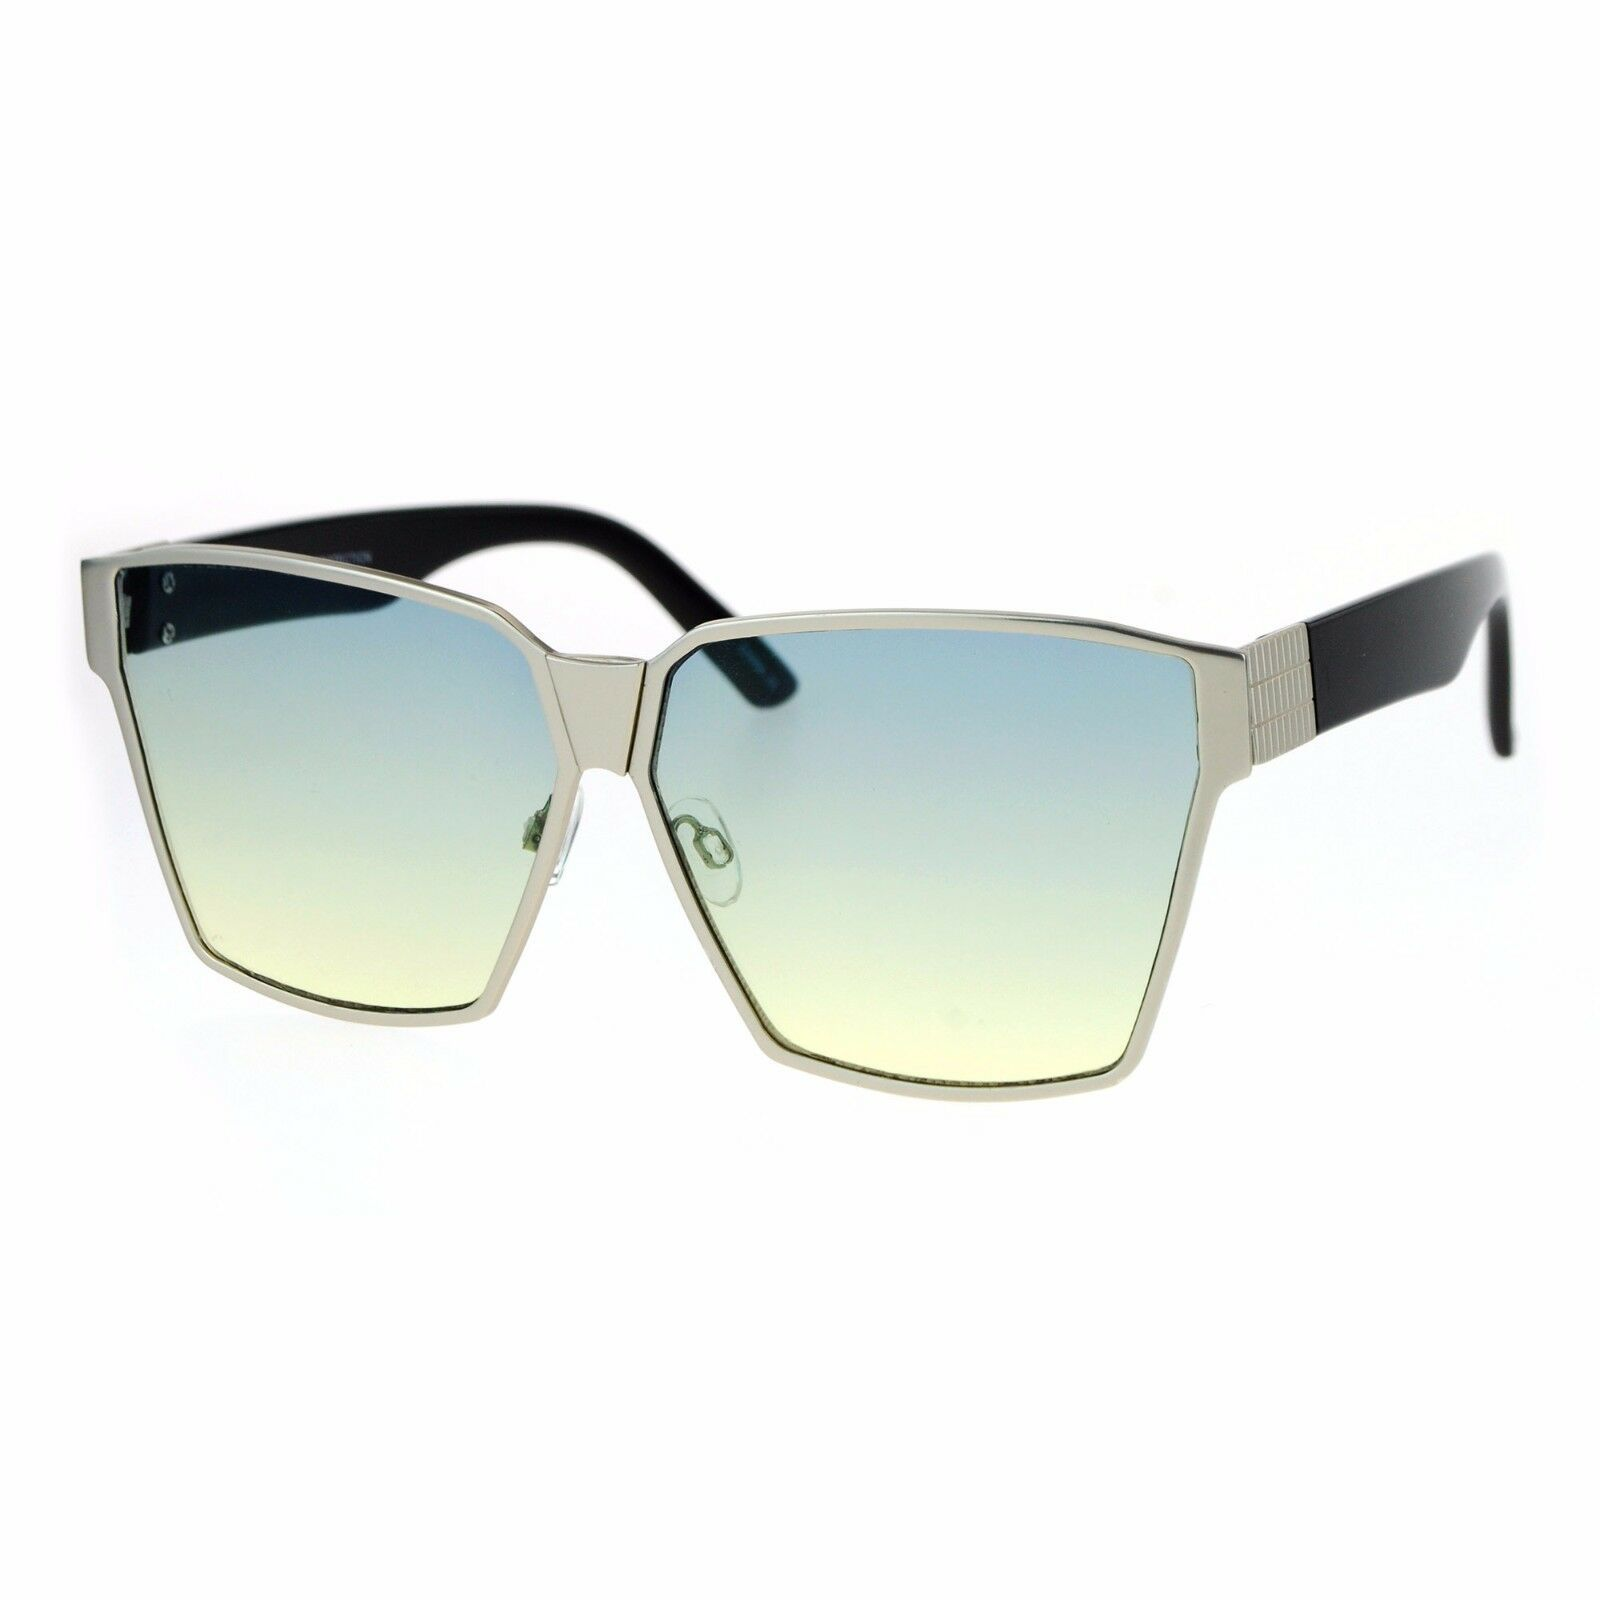 Modern Fashion Sunglasses Womens Oversized Square Light Gradient Lens